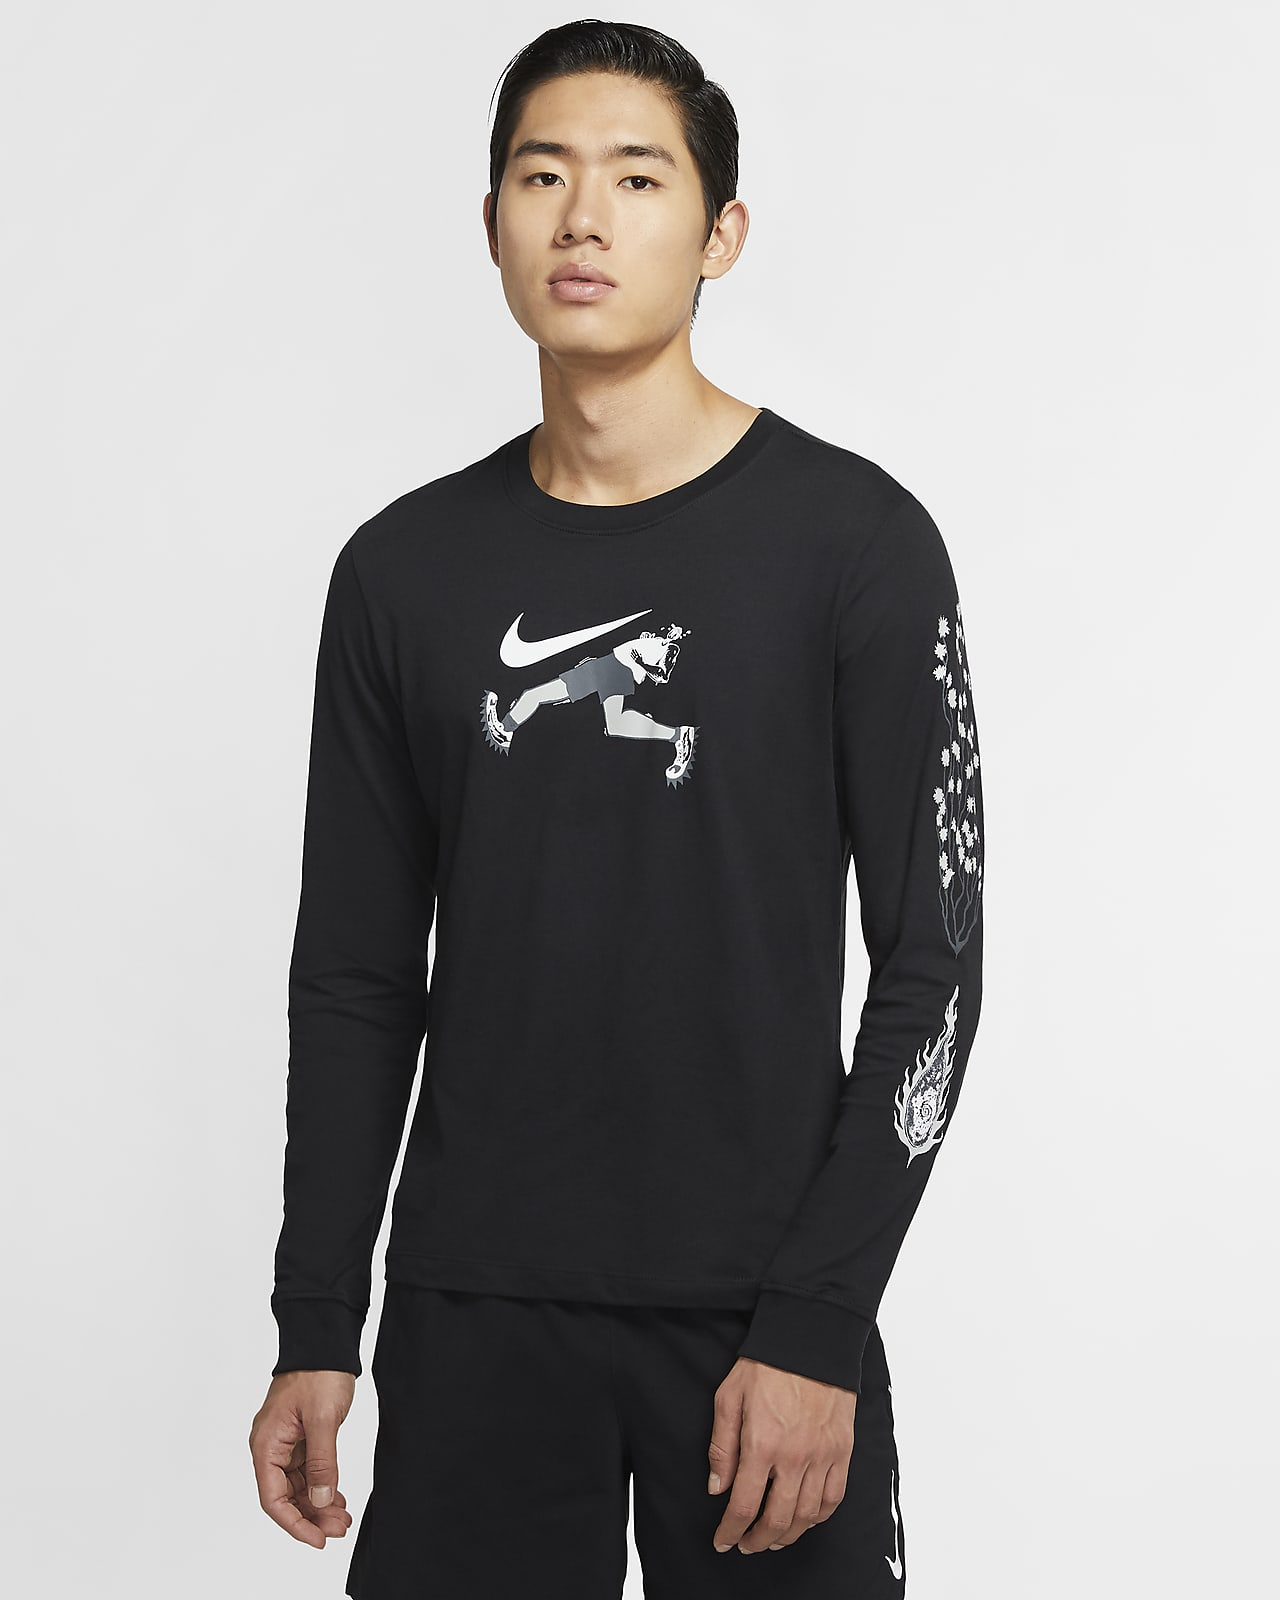 Nike Dri-FIT Wild Run Men's Long-Sleeve Running T-Shirt